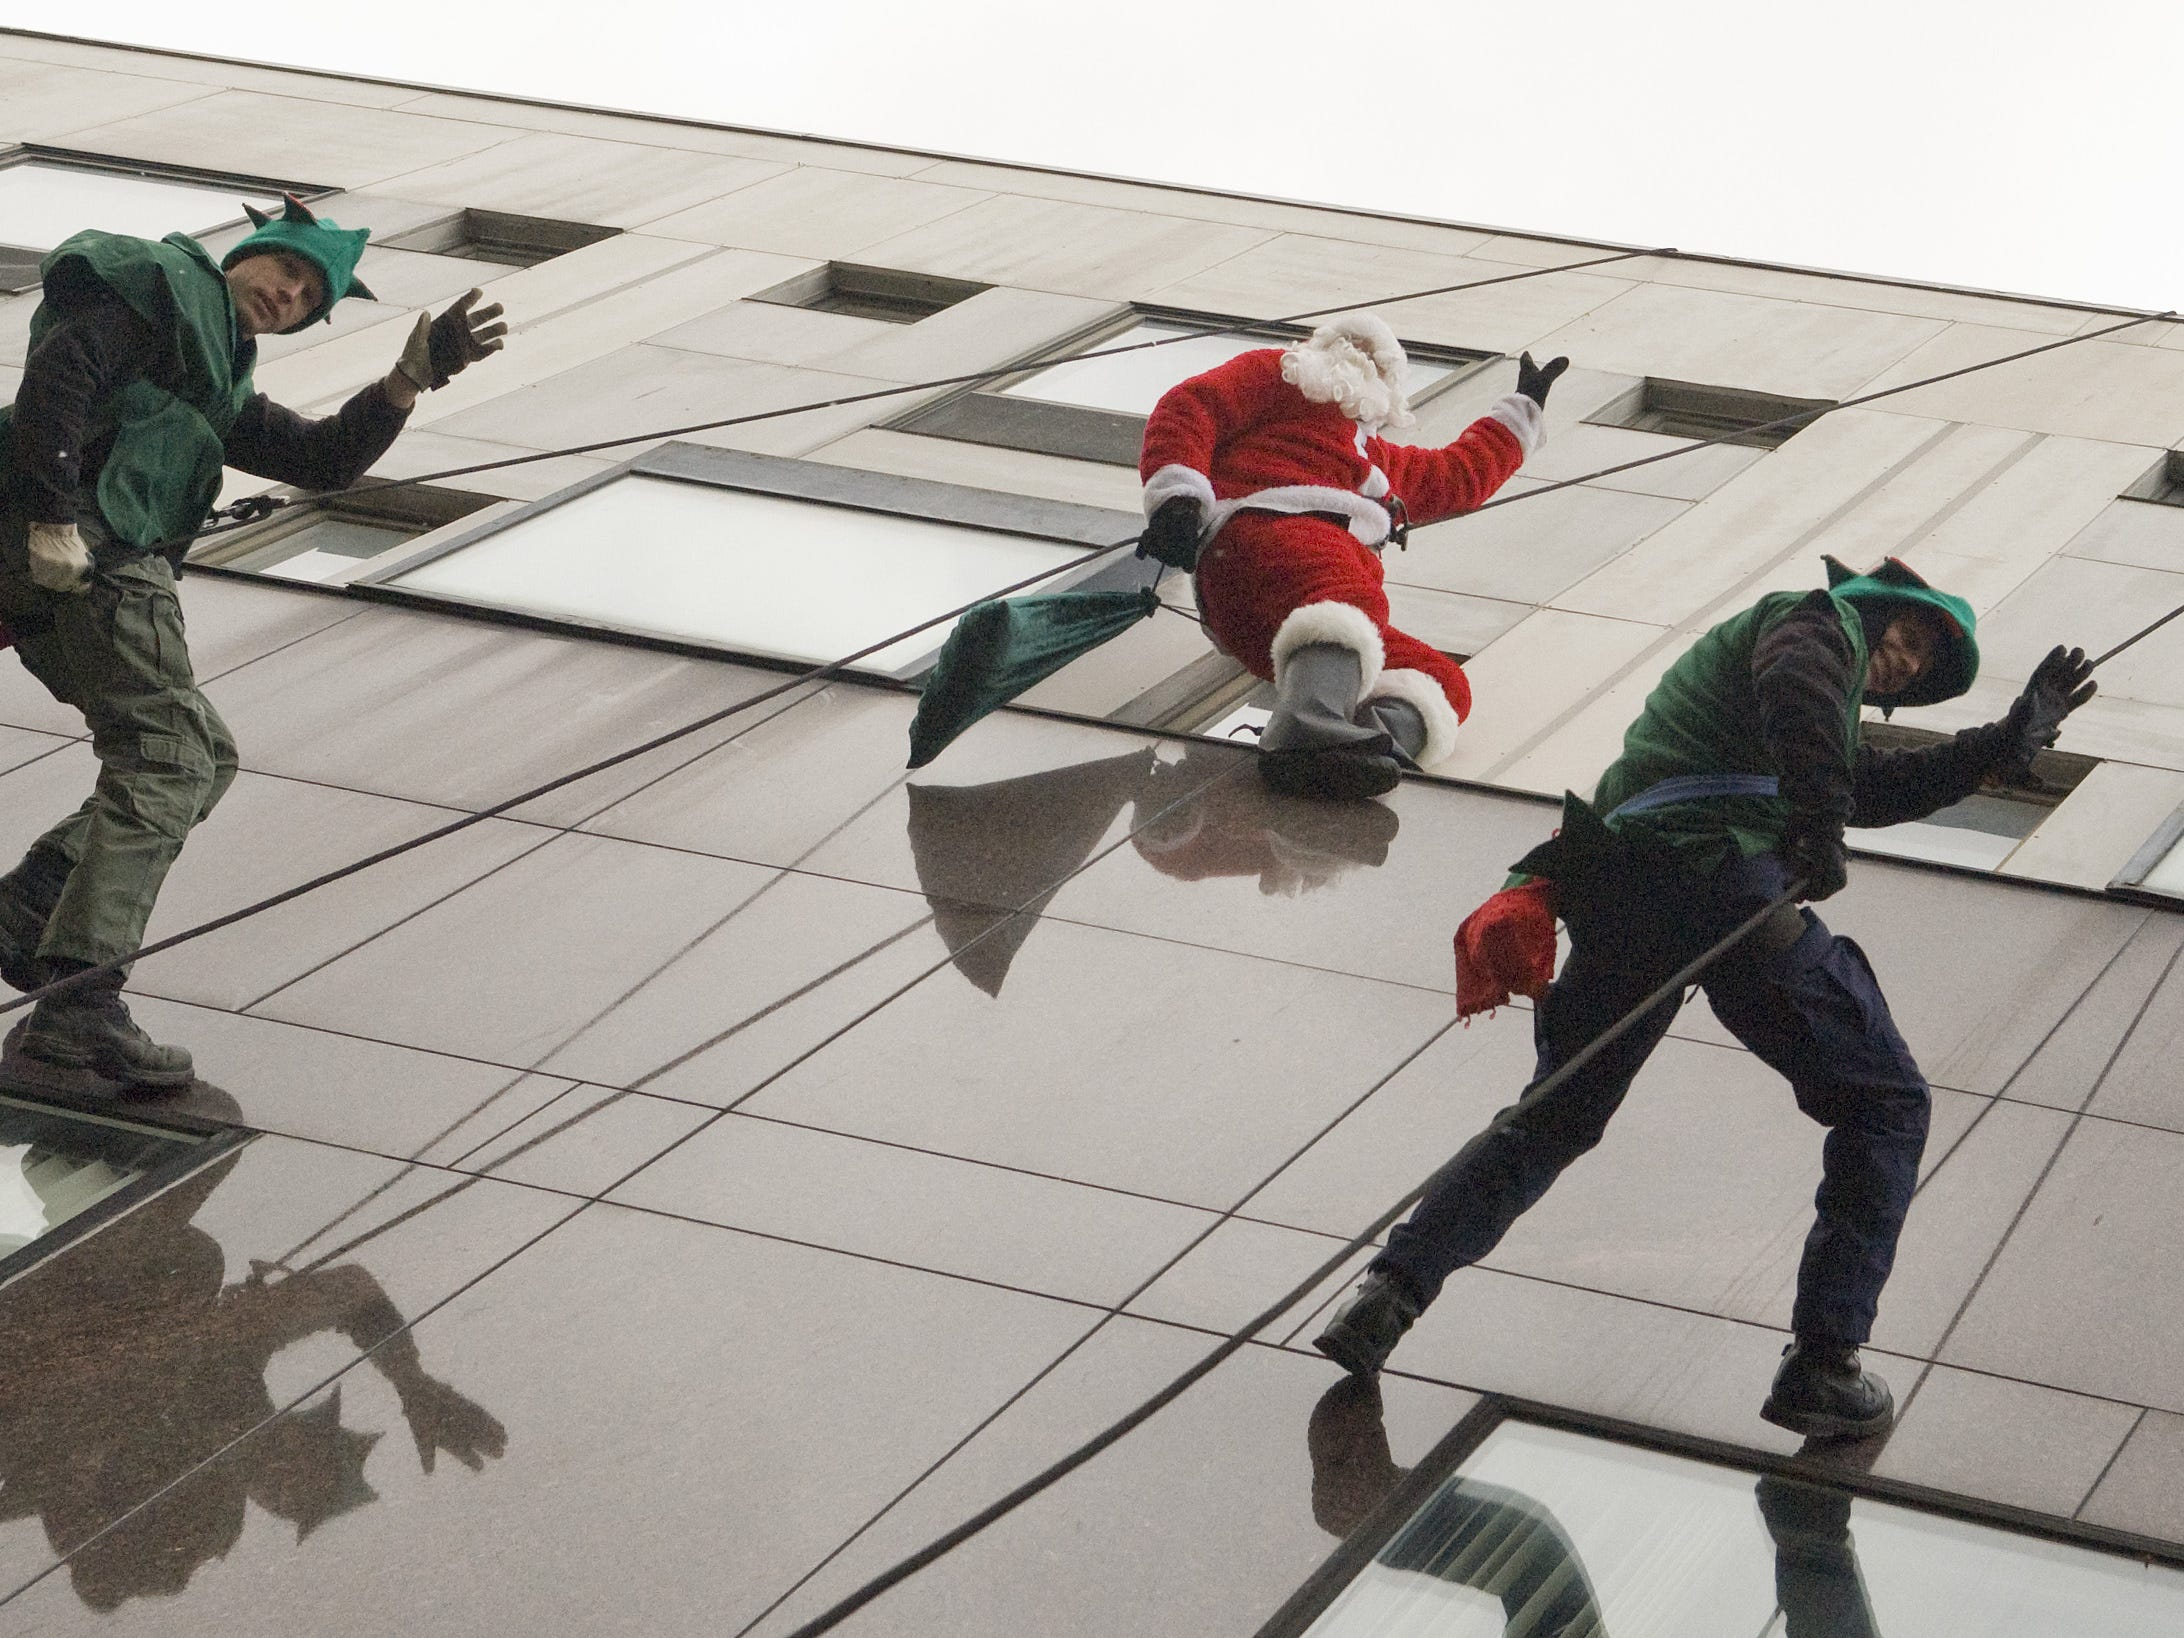 Dozens of kids young and old gaze up and watch Santa rappel down from the roof of Center Ithaca in 2010. Santa and two of his elves flew in for the festivities which included music by Johnny Russo and his band, ginger bread house creations and a dance and choral recital.